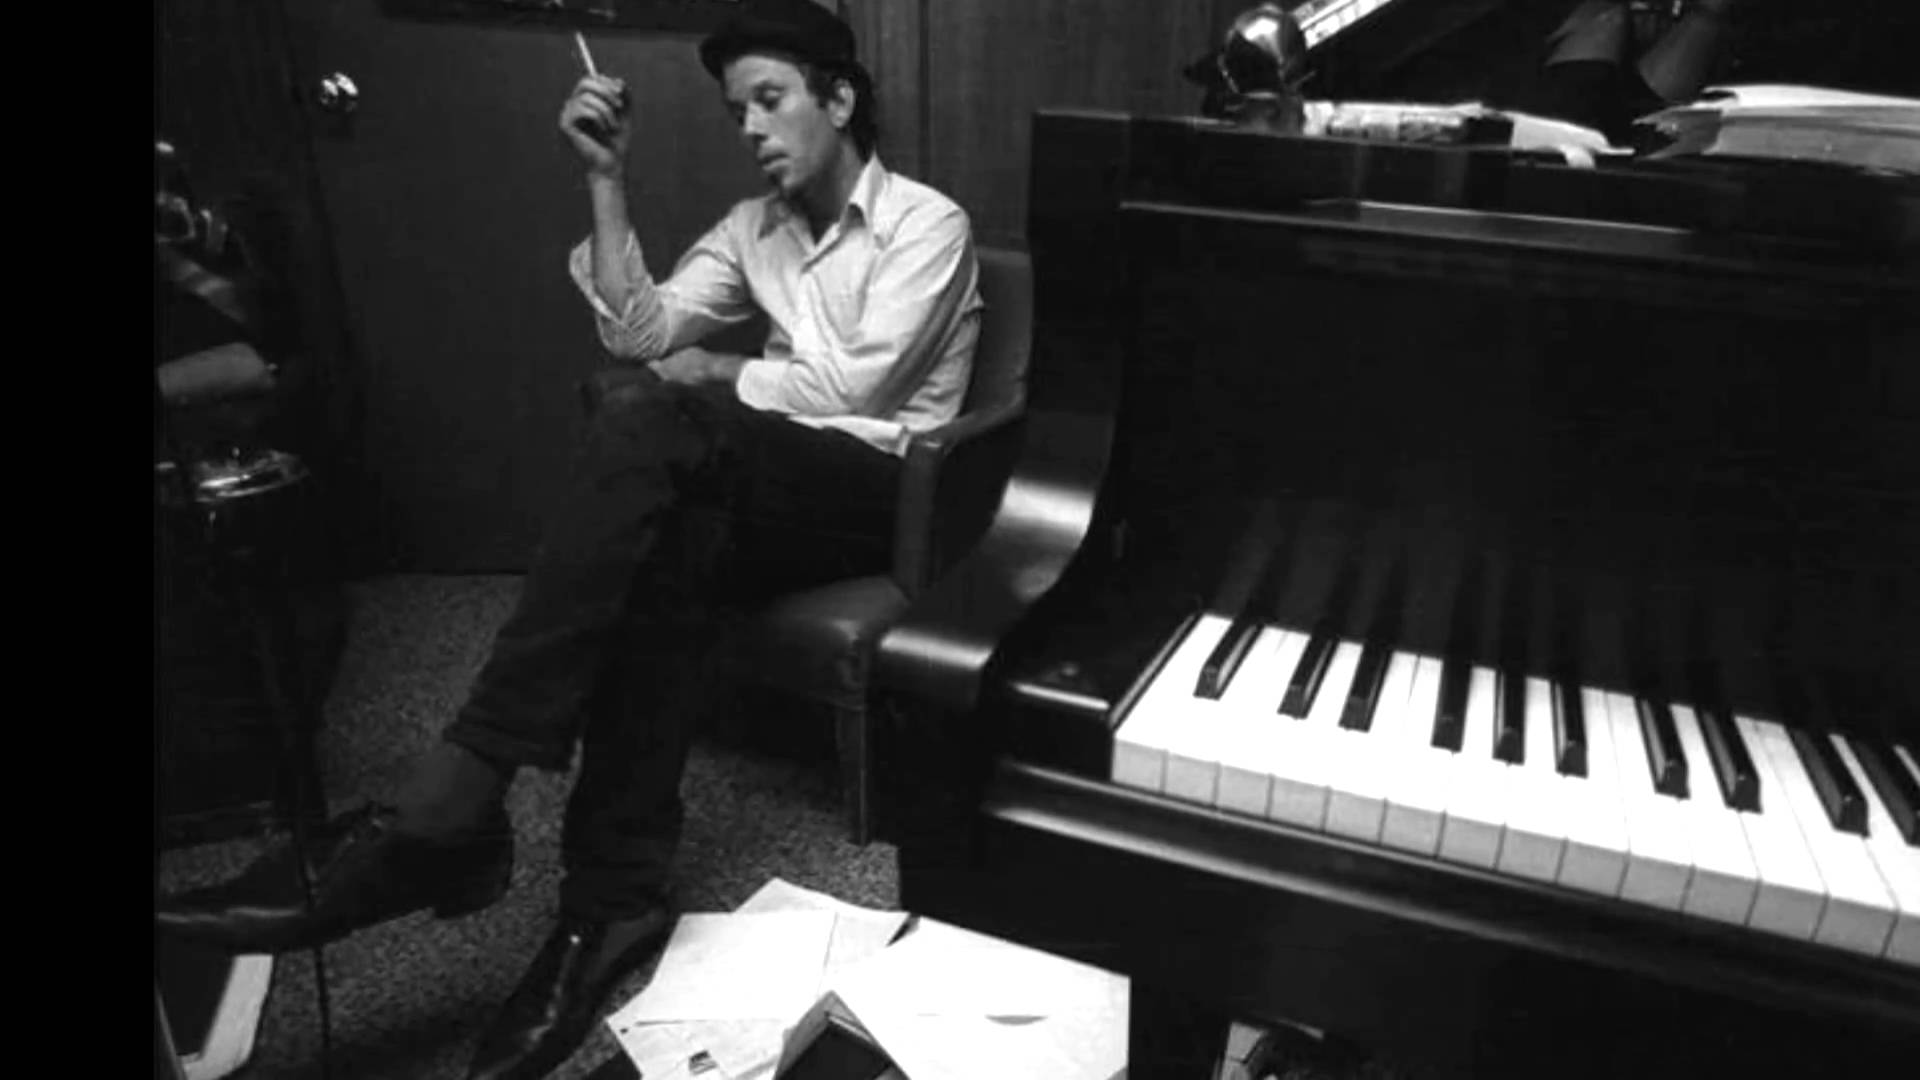 Tom Waits - I Hope That I Don't Fall In Love With You - Rare live performance (1973)